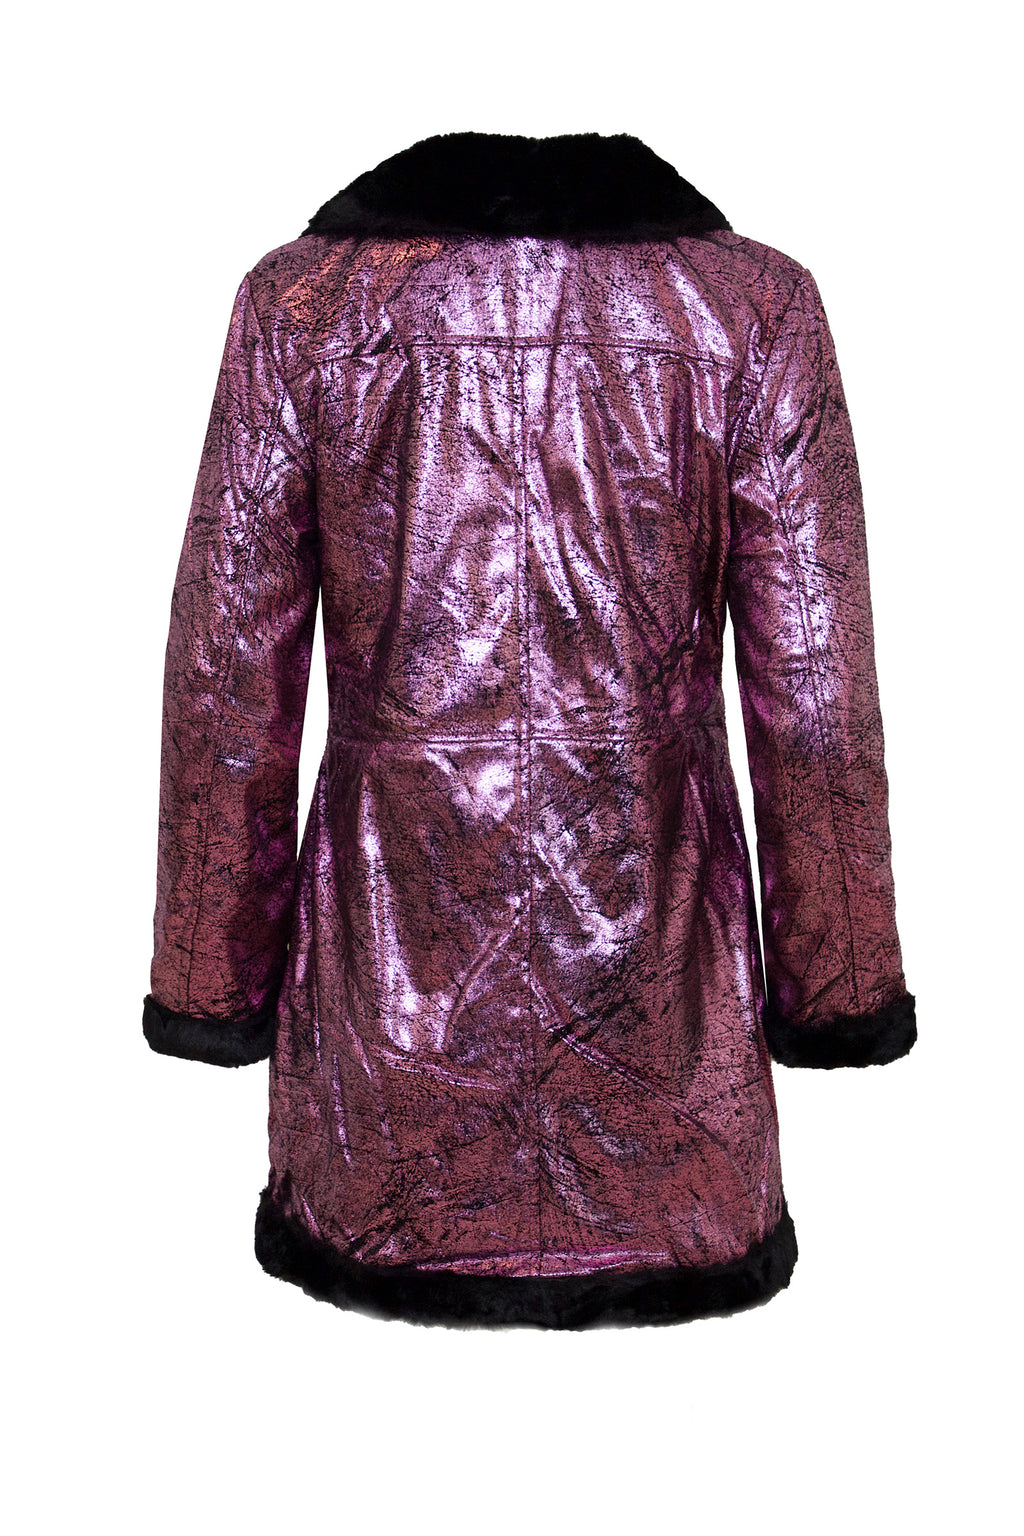 Metallic Pink Fur Lined Coat